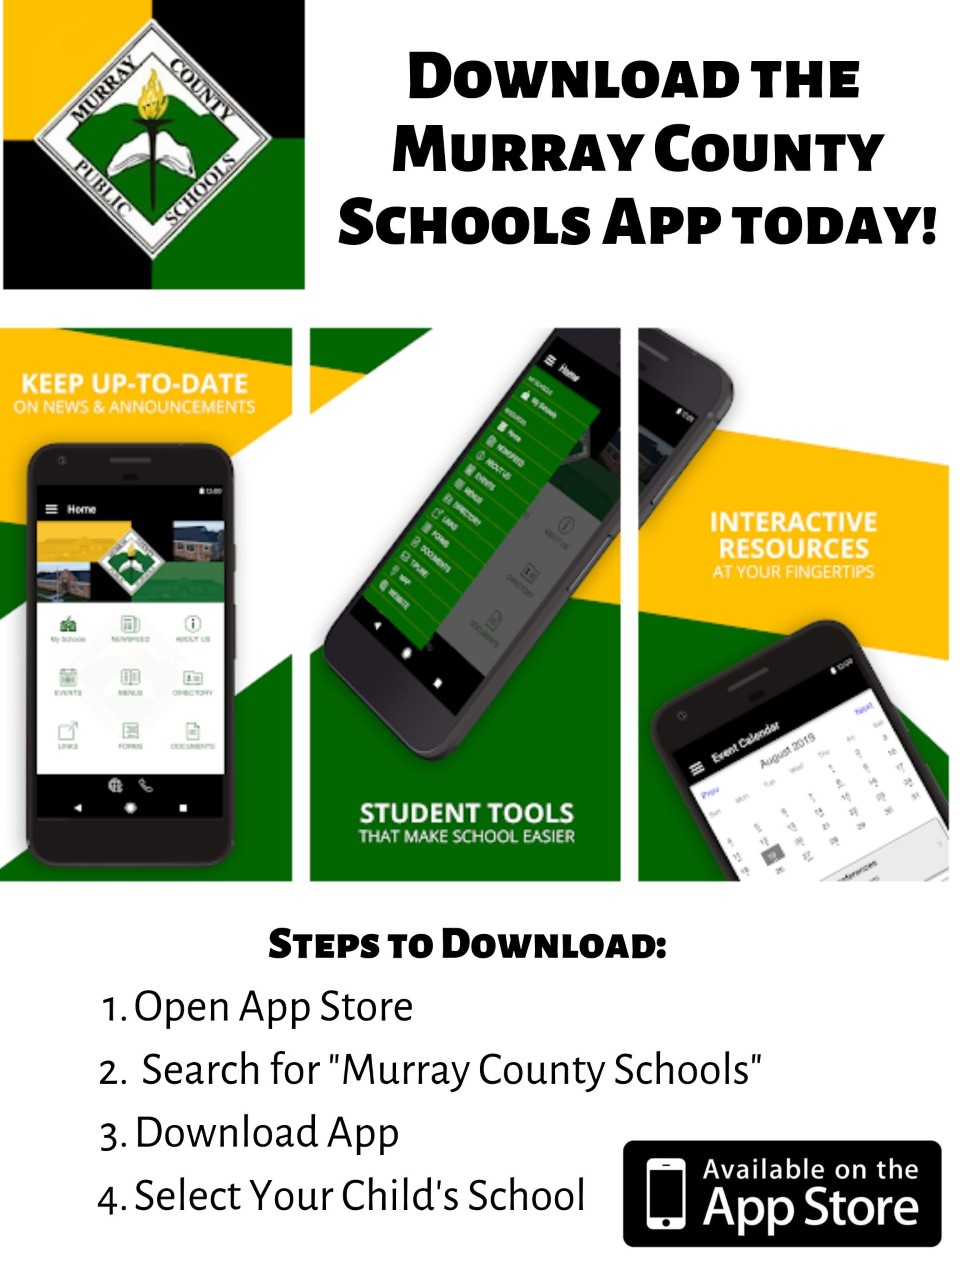 Download the New Murray County App for Communication